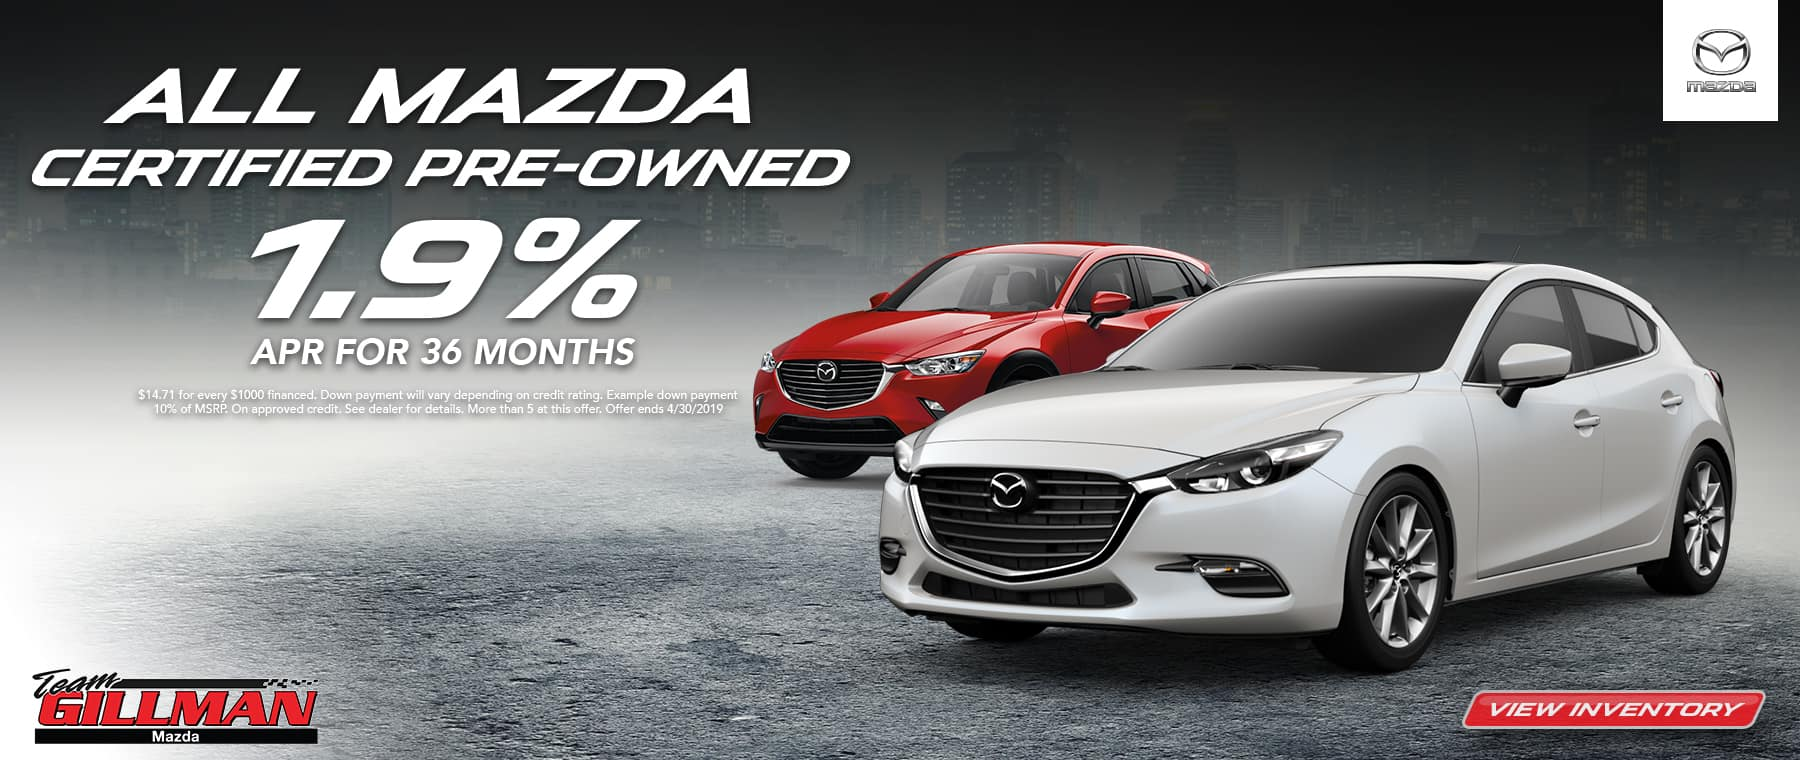 All-Mazda-Certified-Pre-Owned-1.9-Percent-APR-For-36-Months